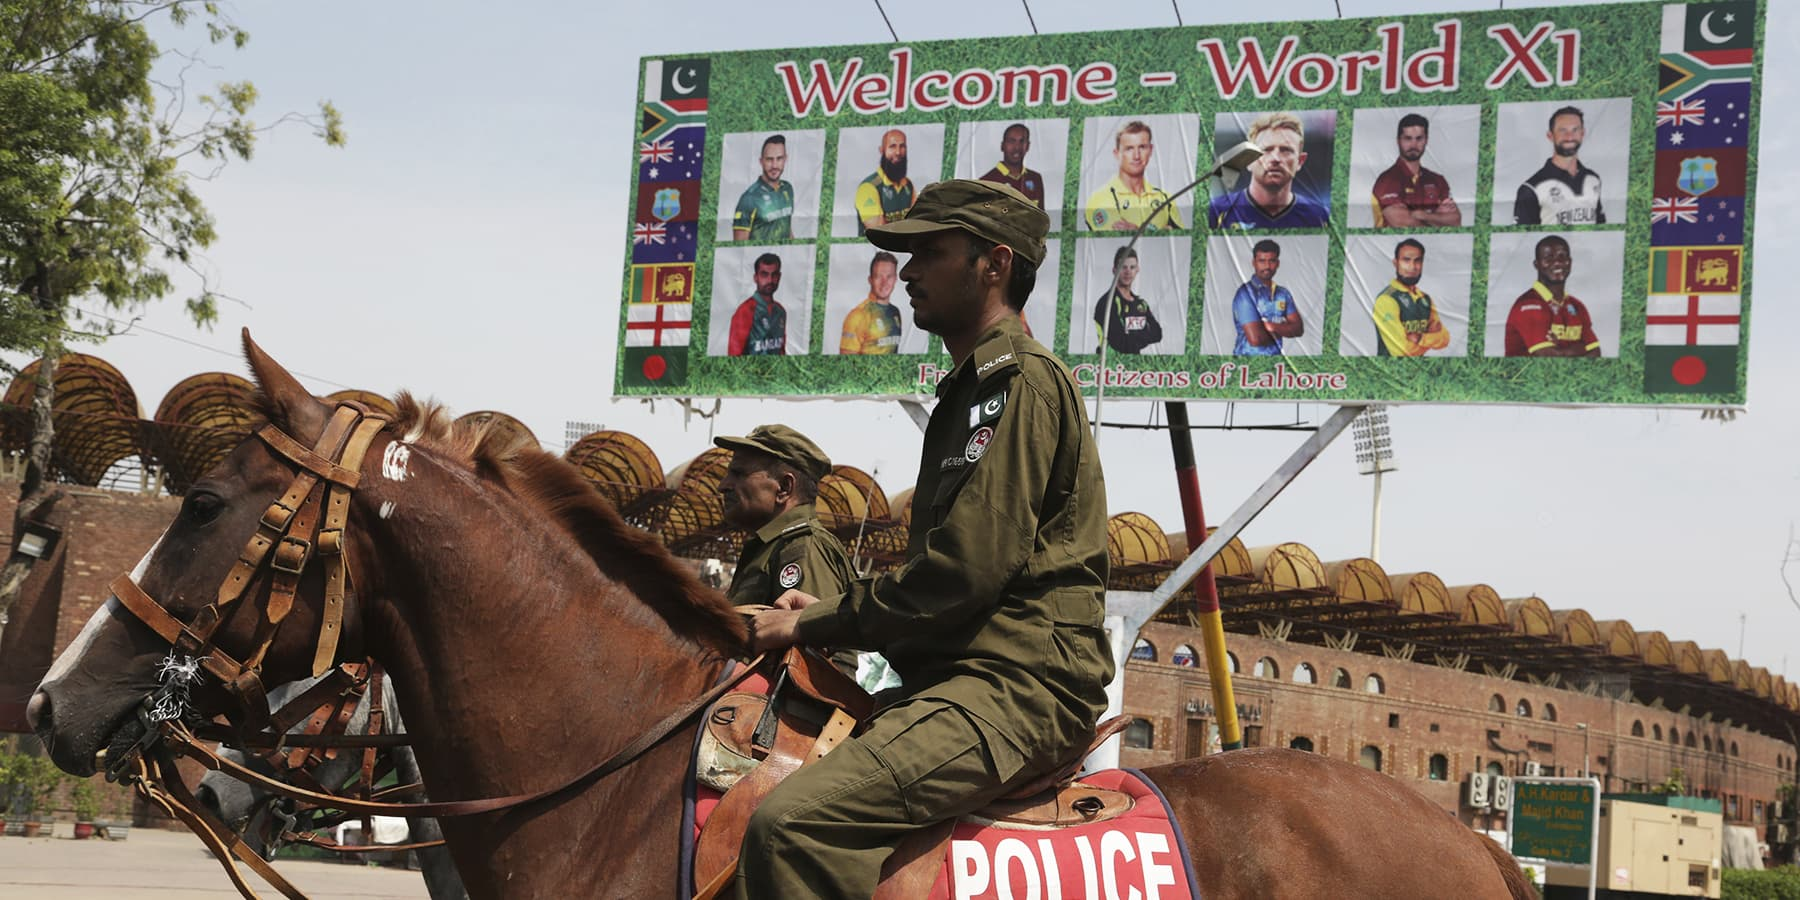 Pakistani police officers patrol in the vicinity of Gaddafi Stadium ahead of the World XI cricket series, in Lahore, Pakistan, Monday, Sept. 11, 2017. The series is aimed at reviving international cricket in Pakistan, since terrorists attacked the Sri Lanka cricket team bus in Lahore in 2009. (AP Photo/K.M. Chaudary) — Copyright 2017 The Associated Press. All rights reserved.